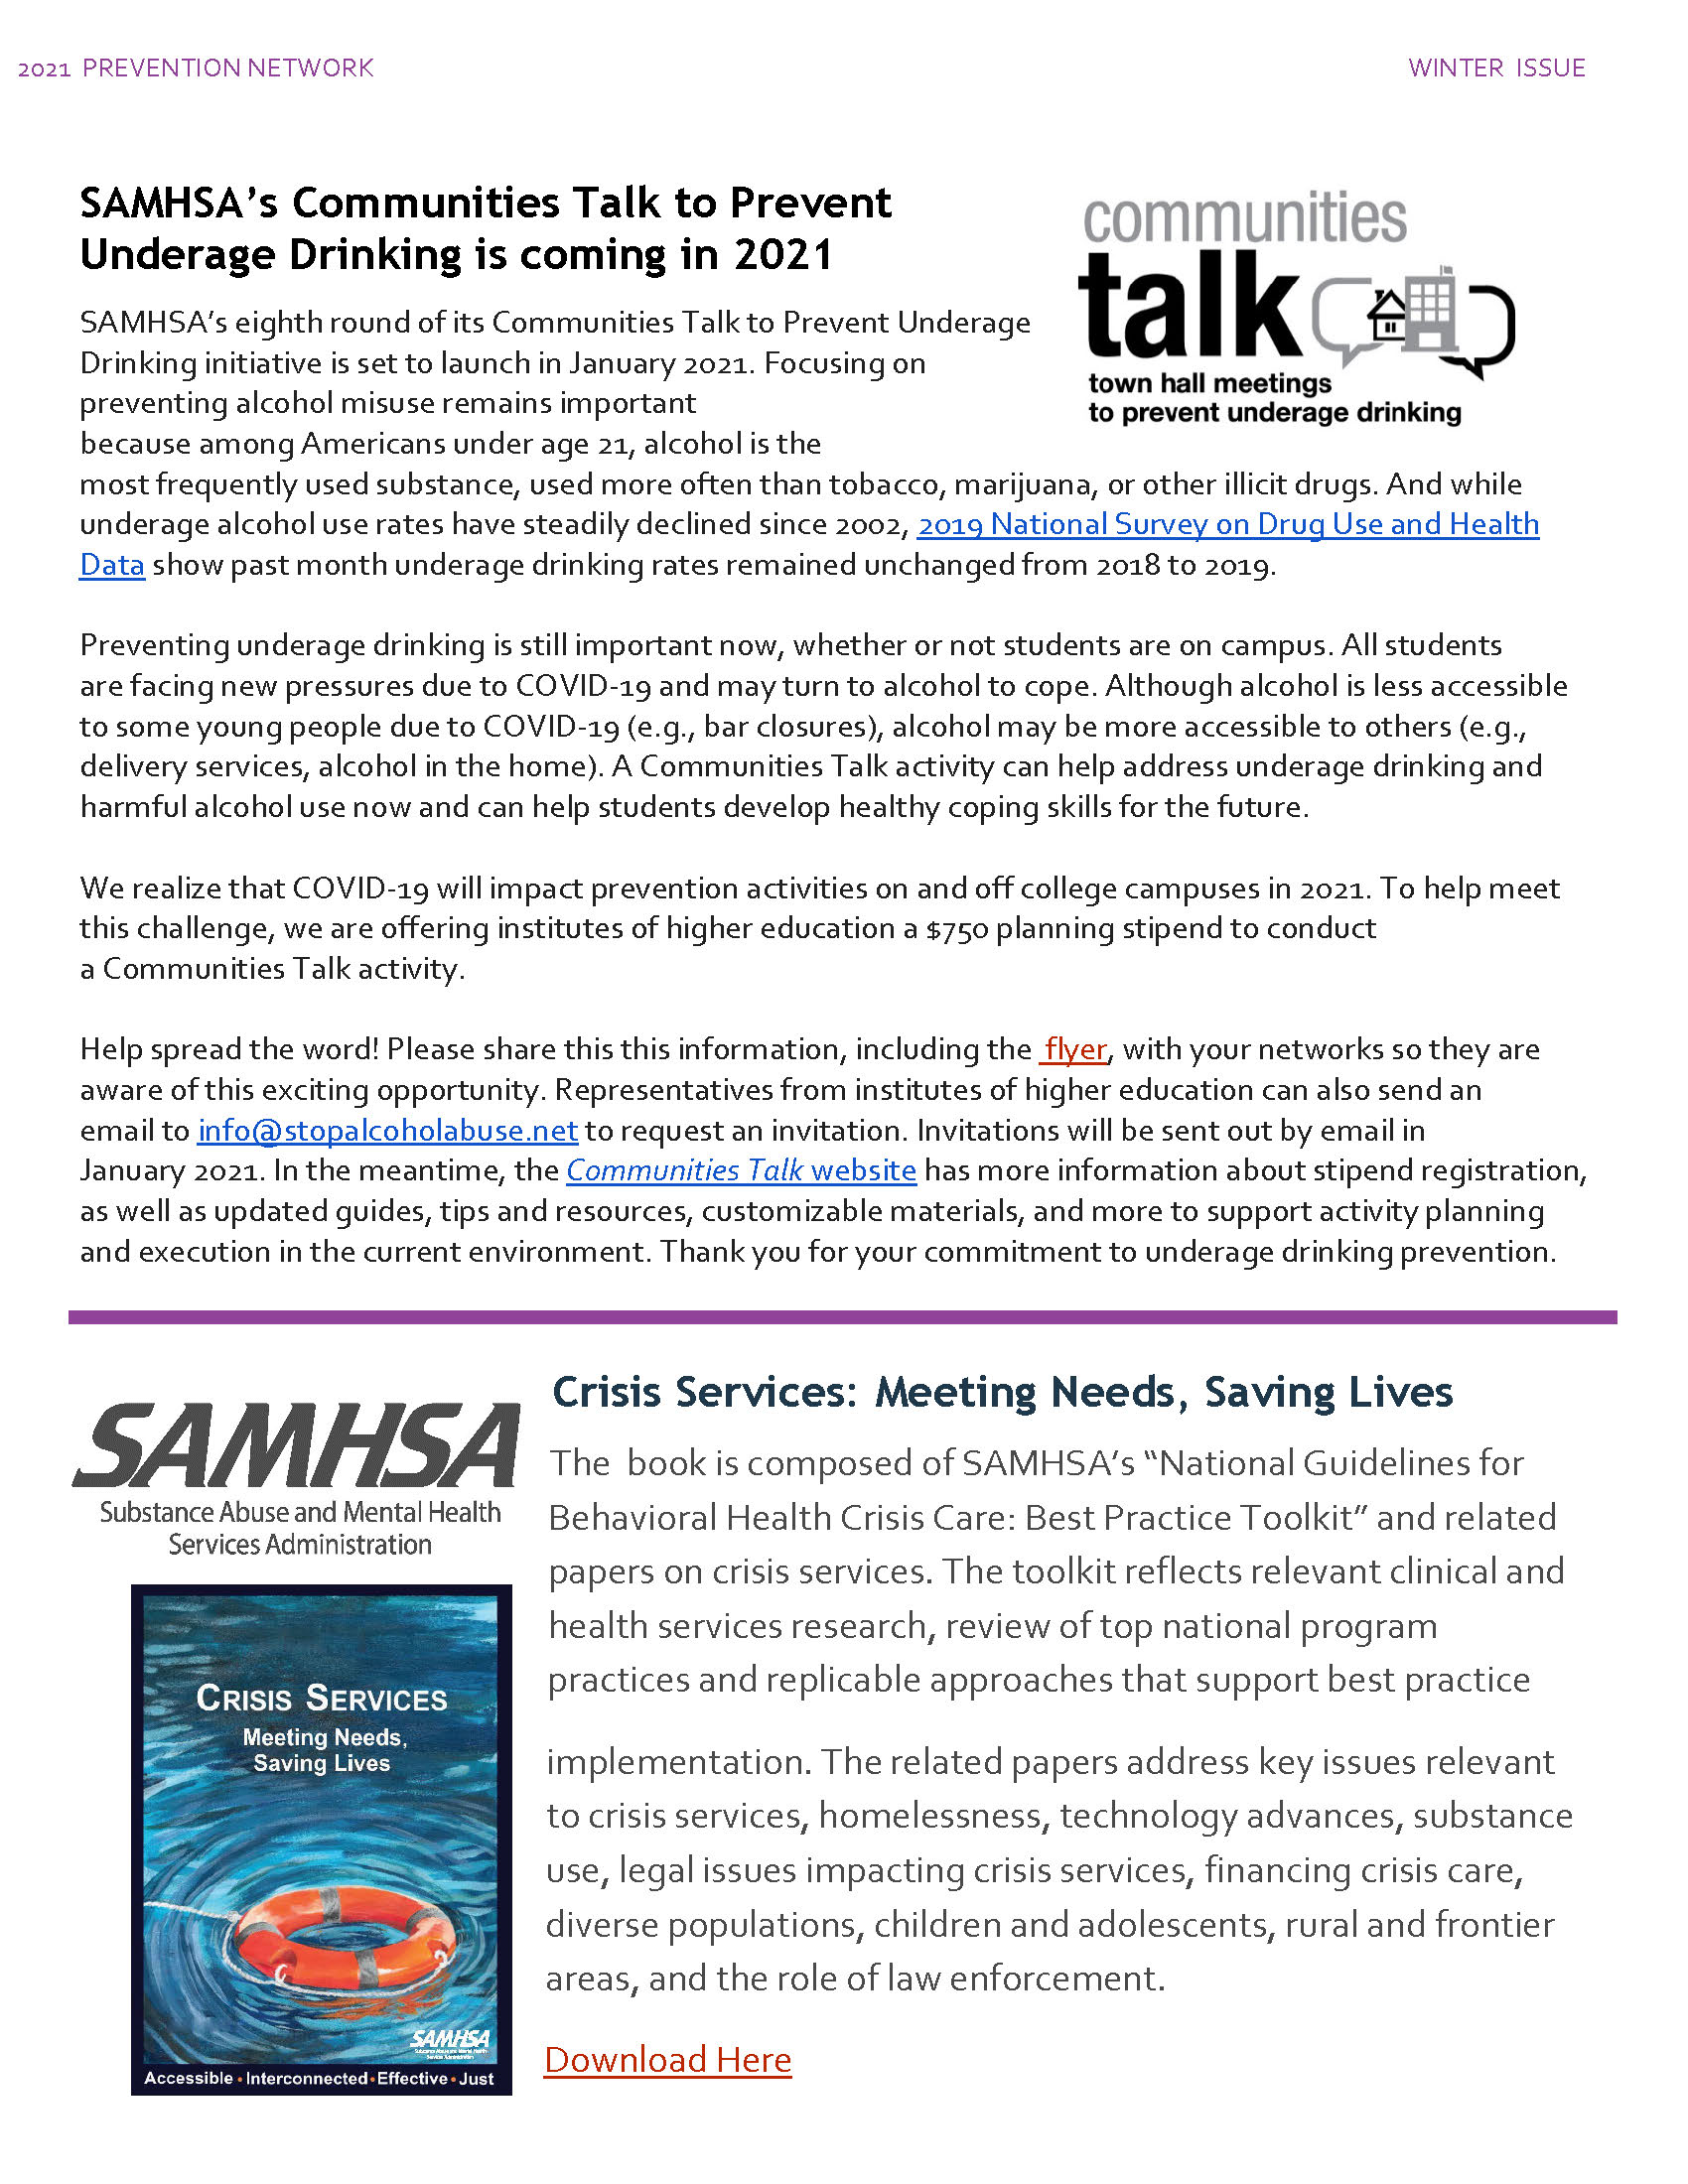 SAMHSA's Community Talk and Criss Services: Meeting Needs, Saving Lives